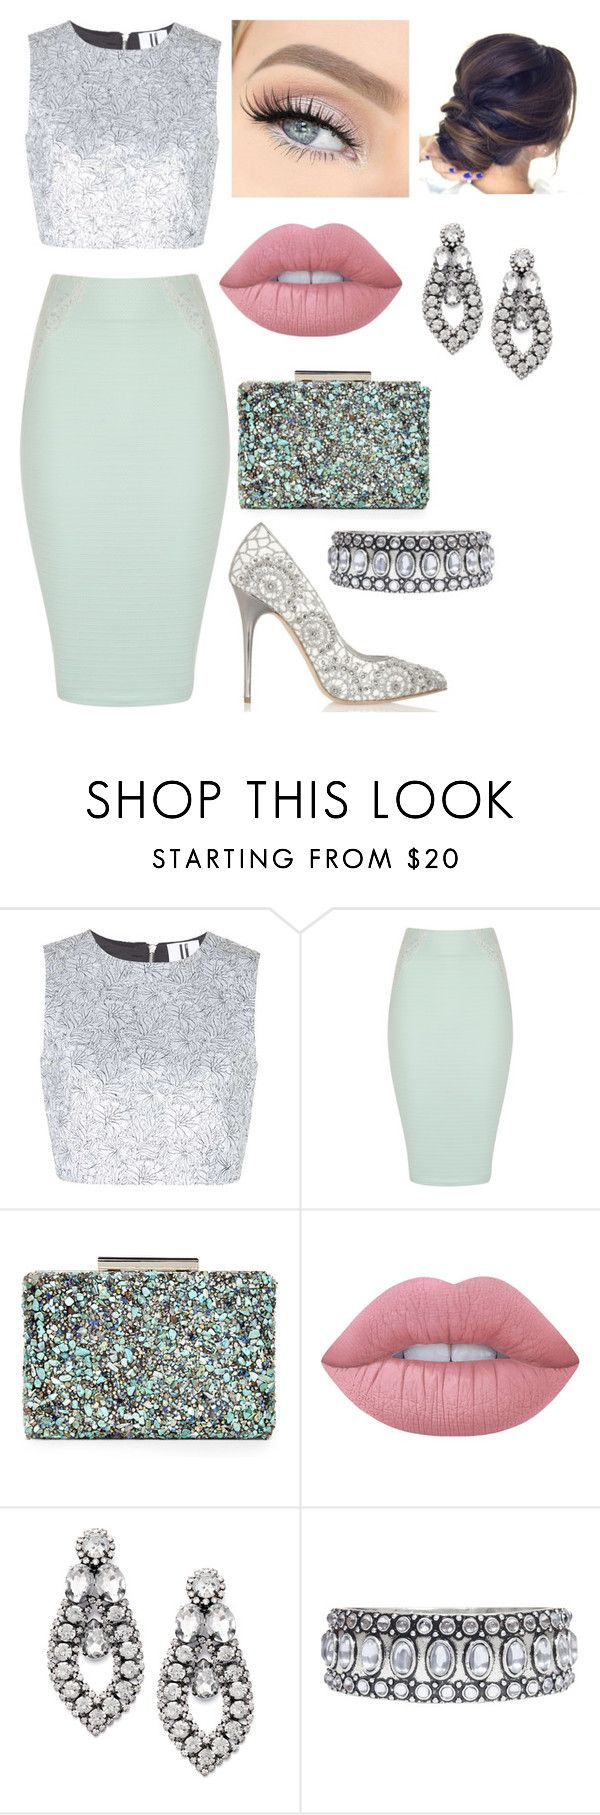 """""""Vestuário de dia-a-dia 169"""" by joana-baptista18 ❤ liked on Polyvore featuring Unique, Jane Norman, Lime Crime, Alexander McQueen, Bar III and Towne & Reese"""